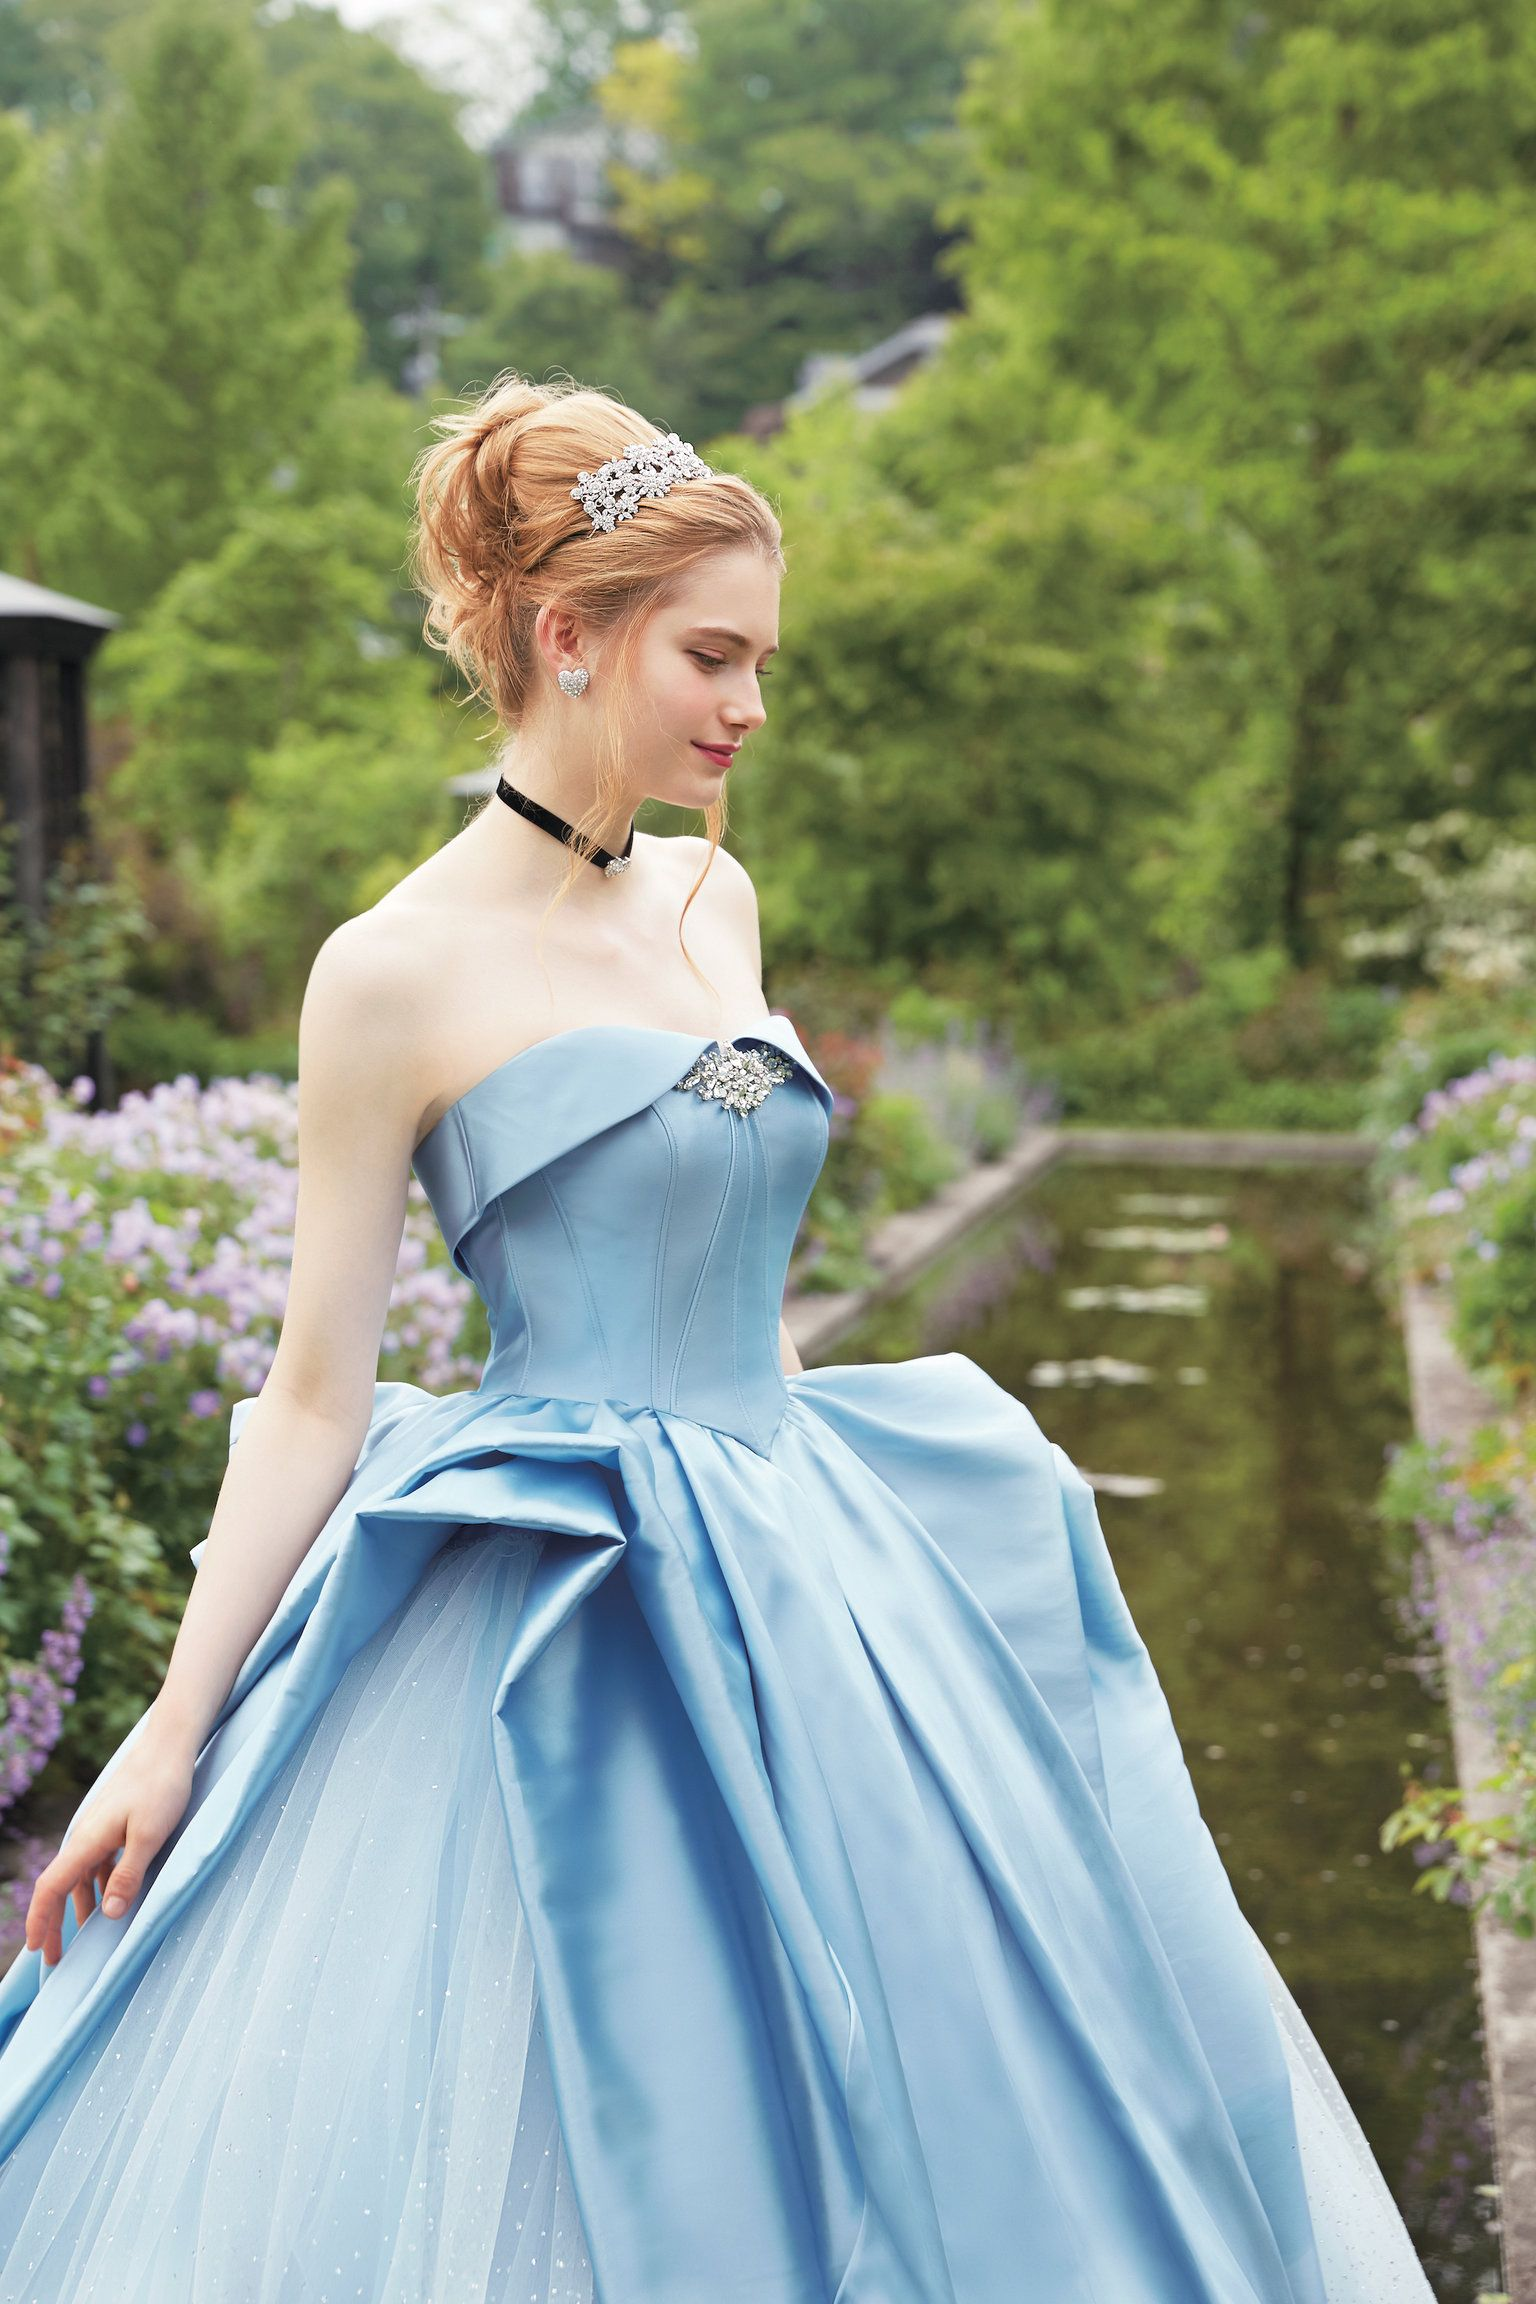 These Disney princess wedding dresses will turn your big day into an ...